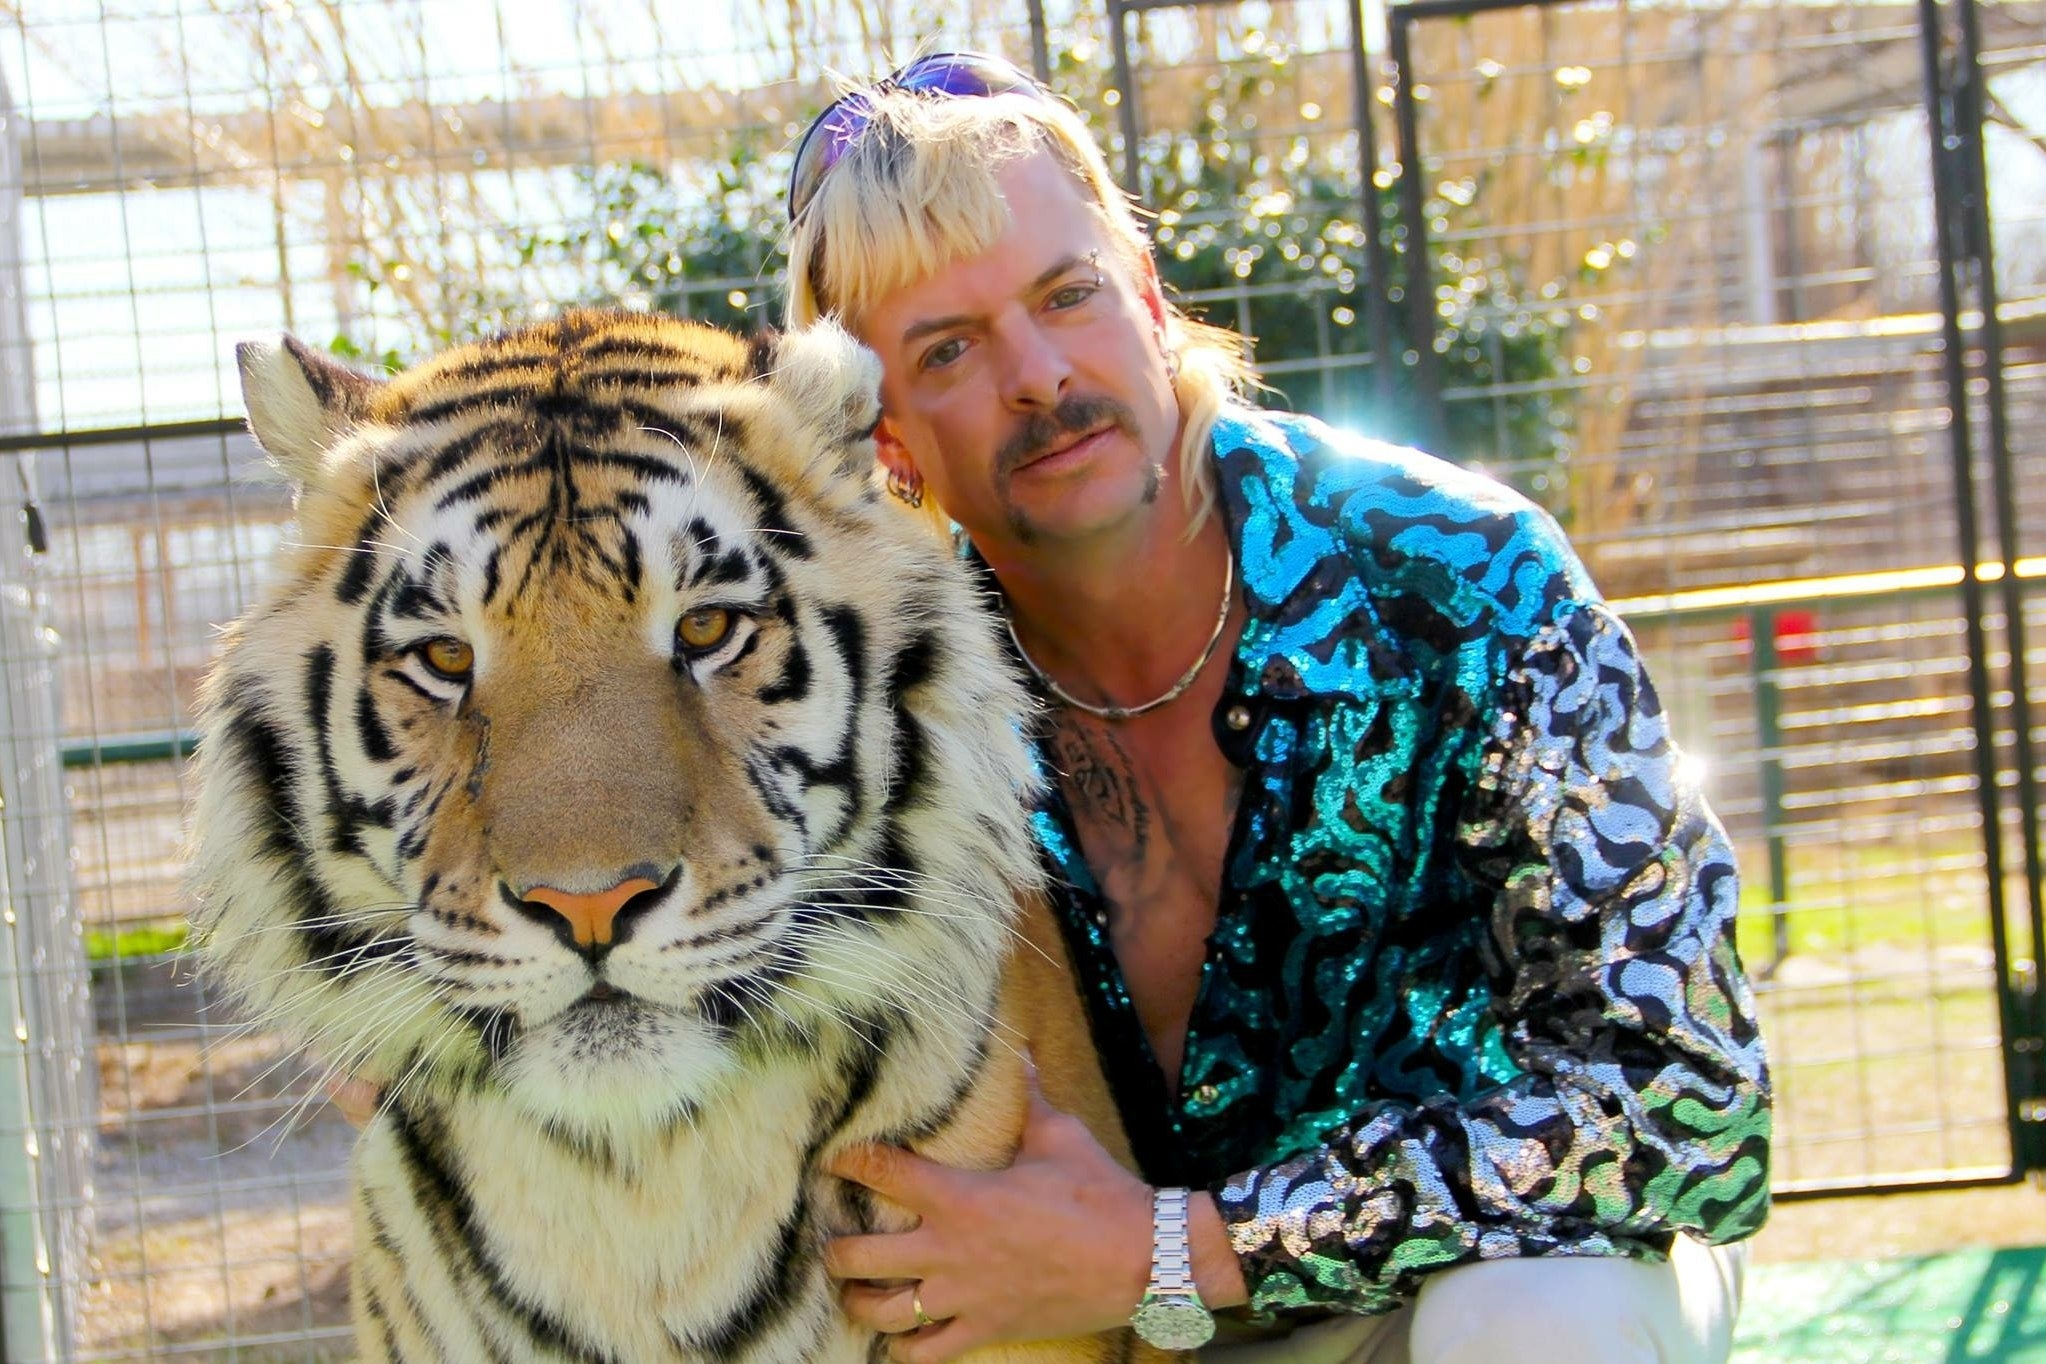 The Tiger King posing with a tiger